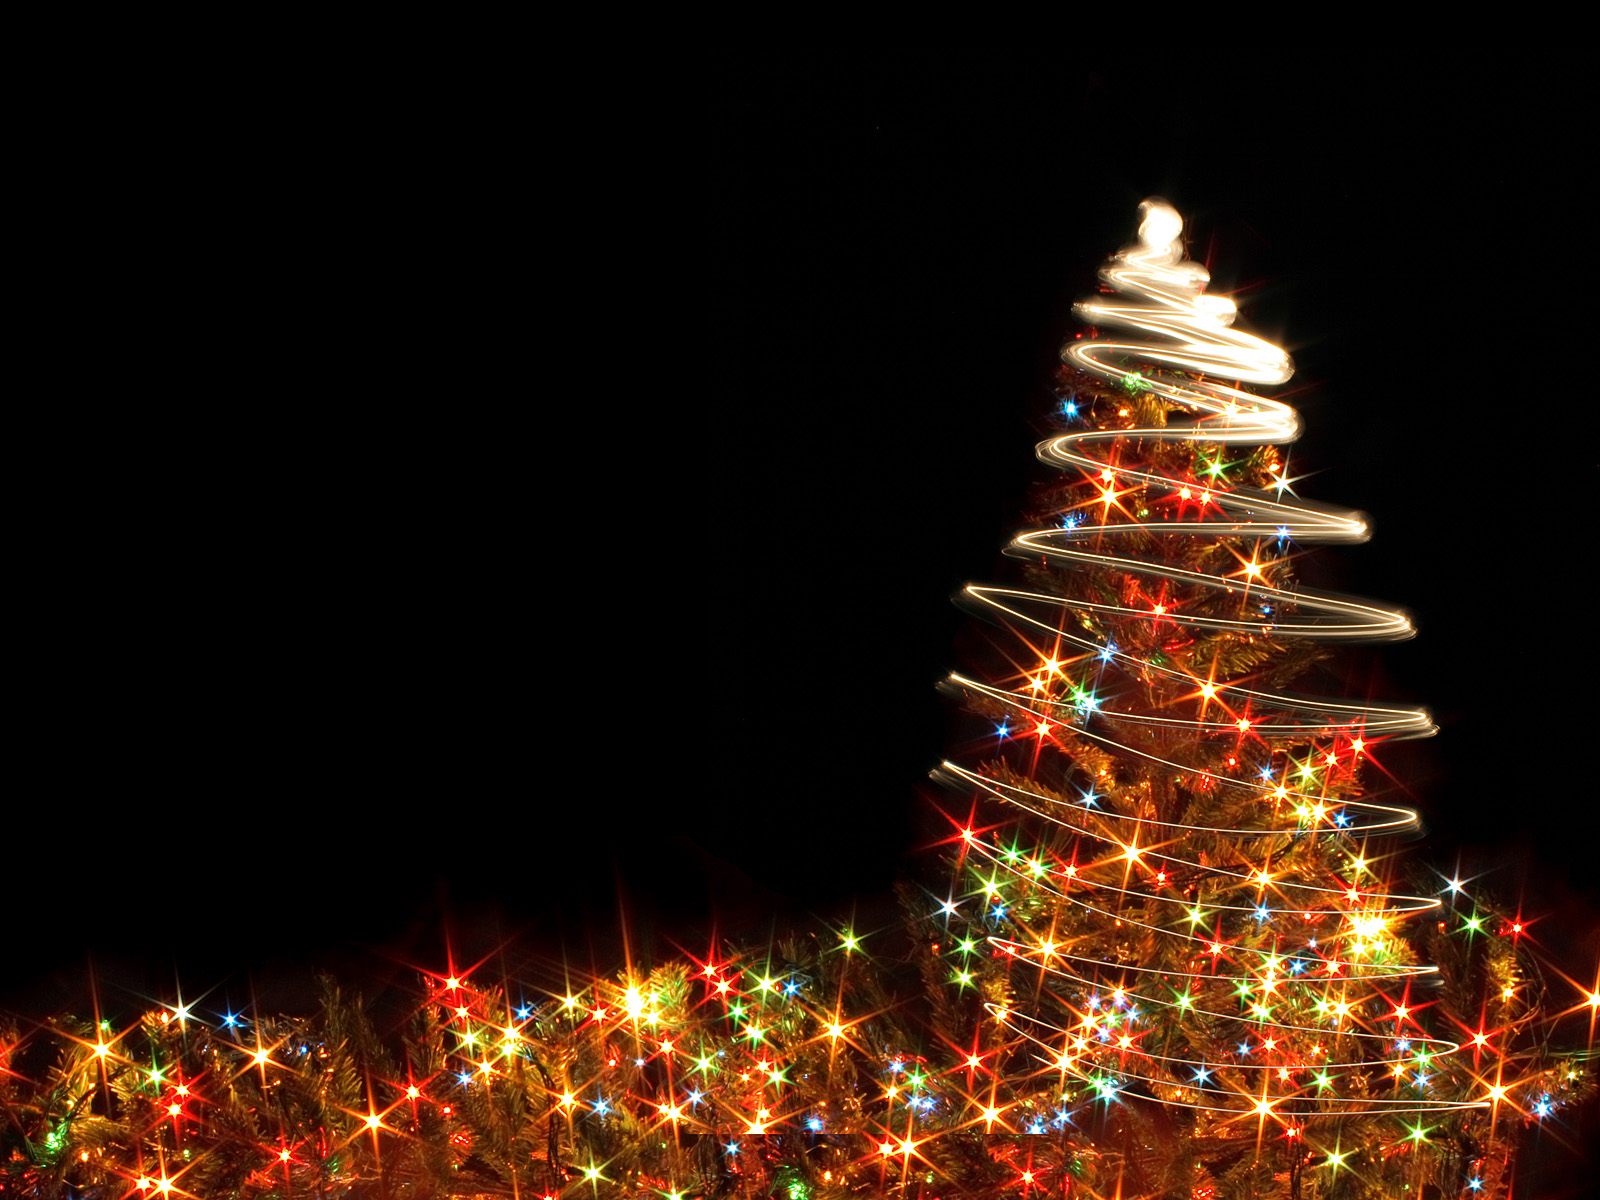 http://3.bp.blogspot.com/-CN_YmRKLmos/TsdOqndRkzI/AAAAAAAABos/b1FWR32qkY0/s1600/Christmas-lights-desktop-Wallpapers-HD-pao-images-15.jpg